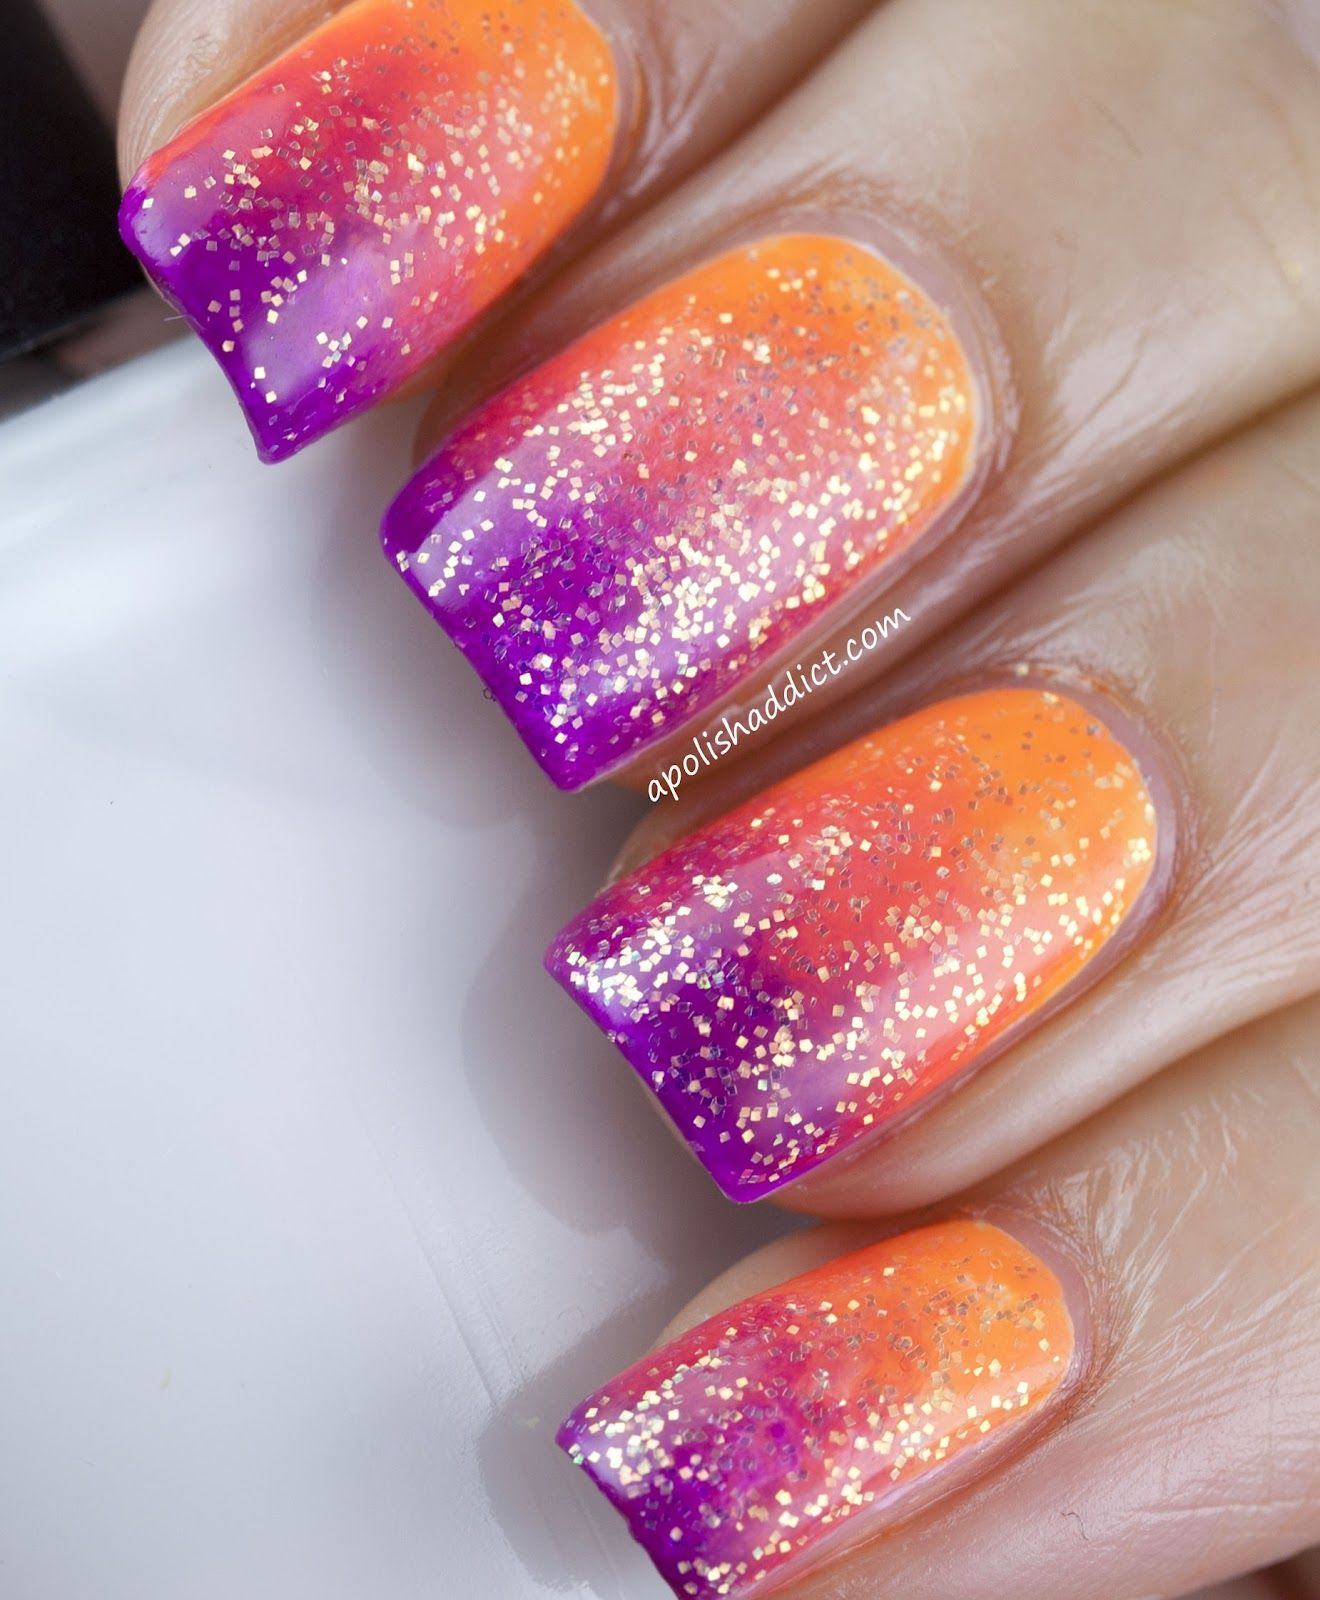 Neon Gradient with American Apparel Neons #nailart #nails | Nails ...